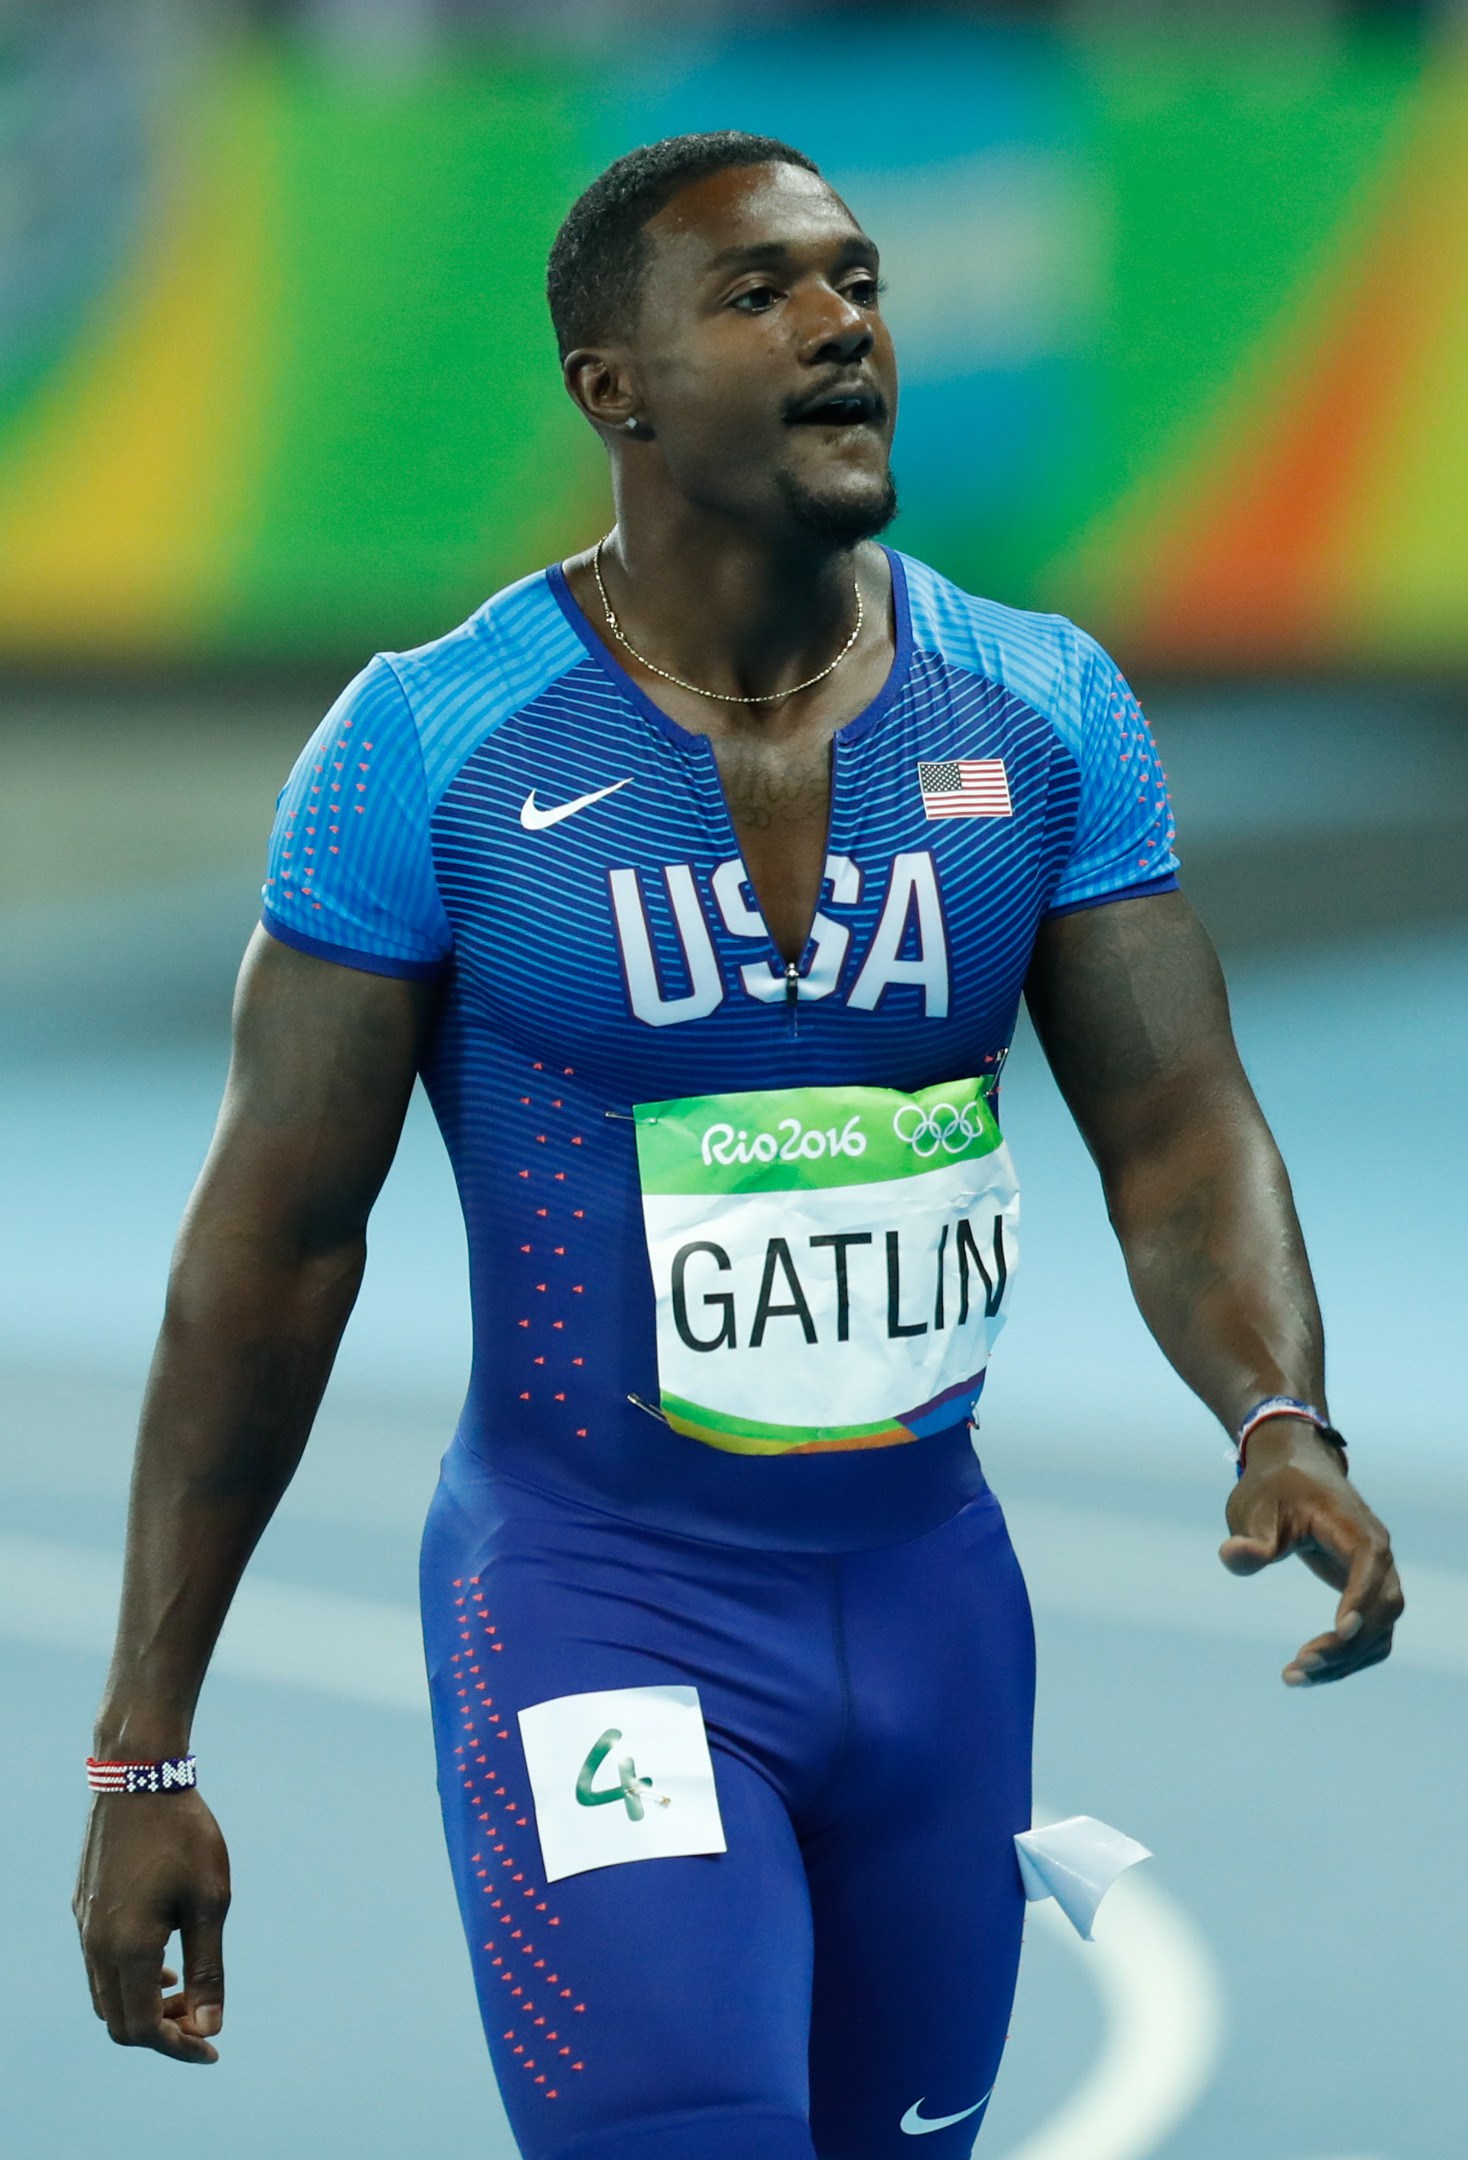 The 37-year old son of father (?) and mother(?) Justin Gatlin in 2019 photo. Justin Gatlin earned a  million dollar salary - leaving the net worth at 1 million in 2019